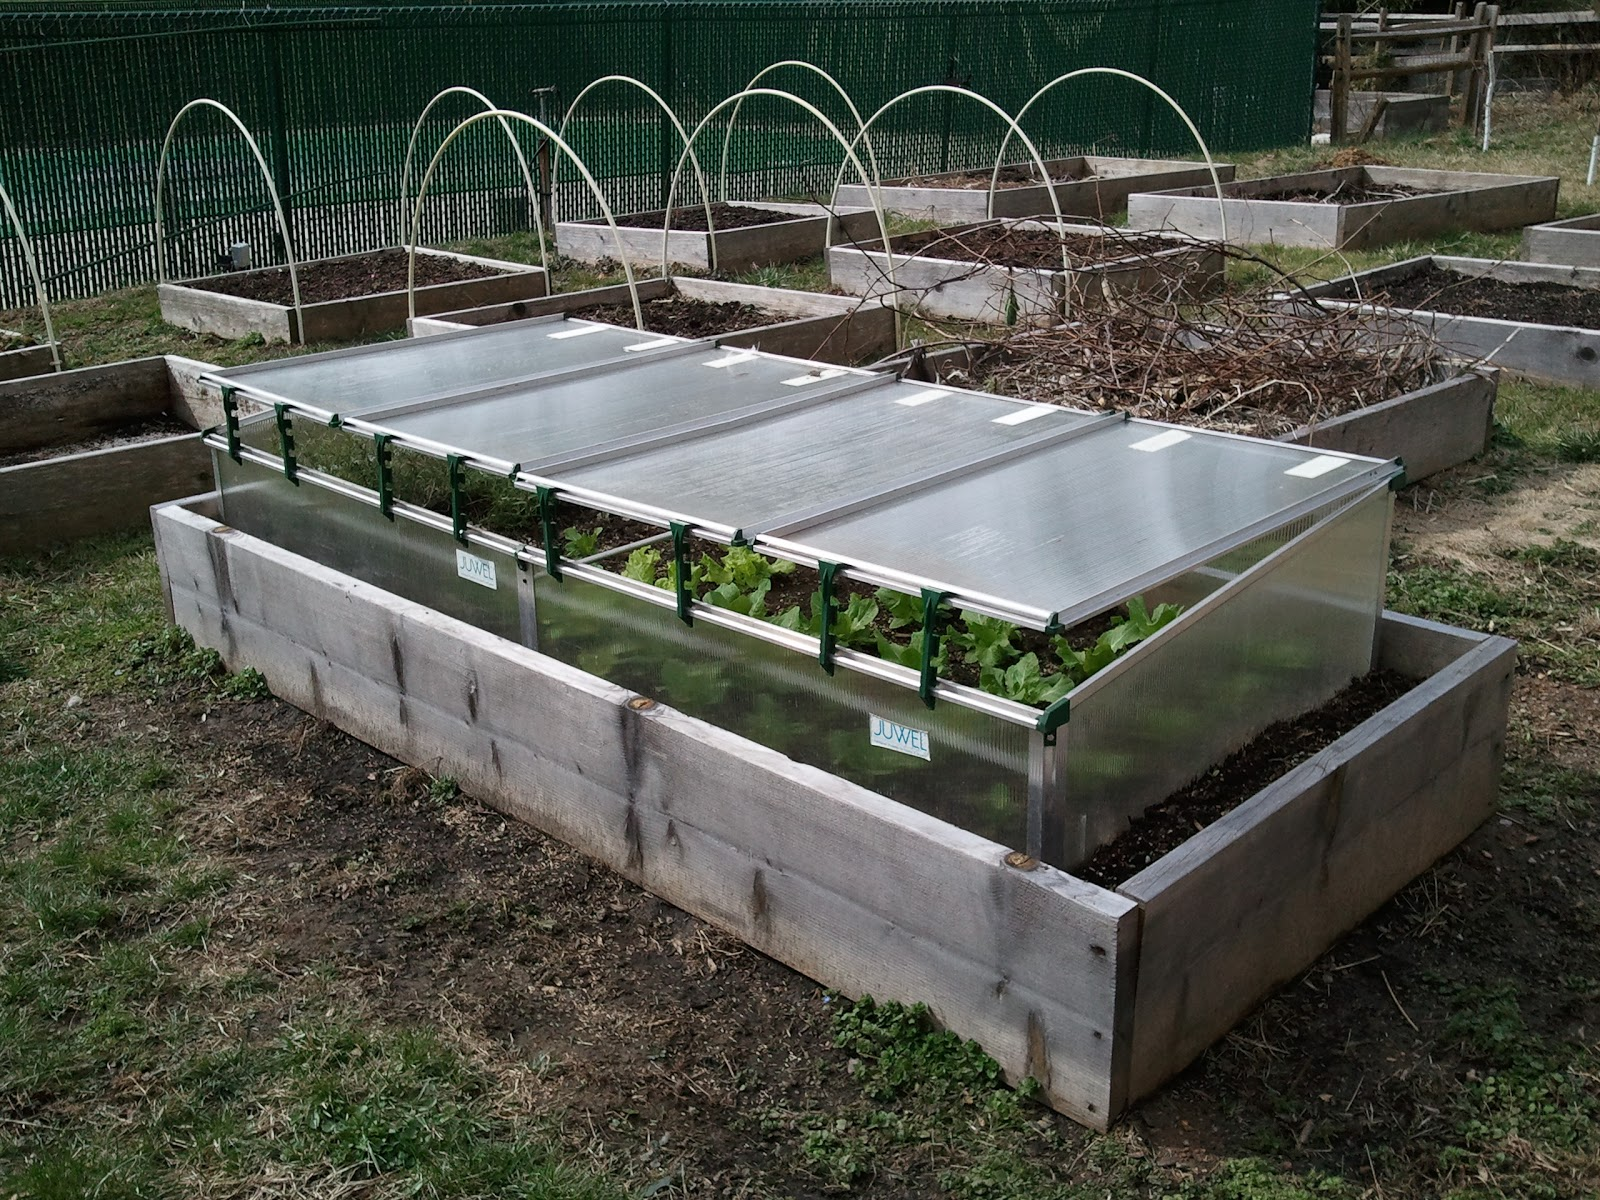 Italian Gardening: Cold Frame Protects Plants During Winter